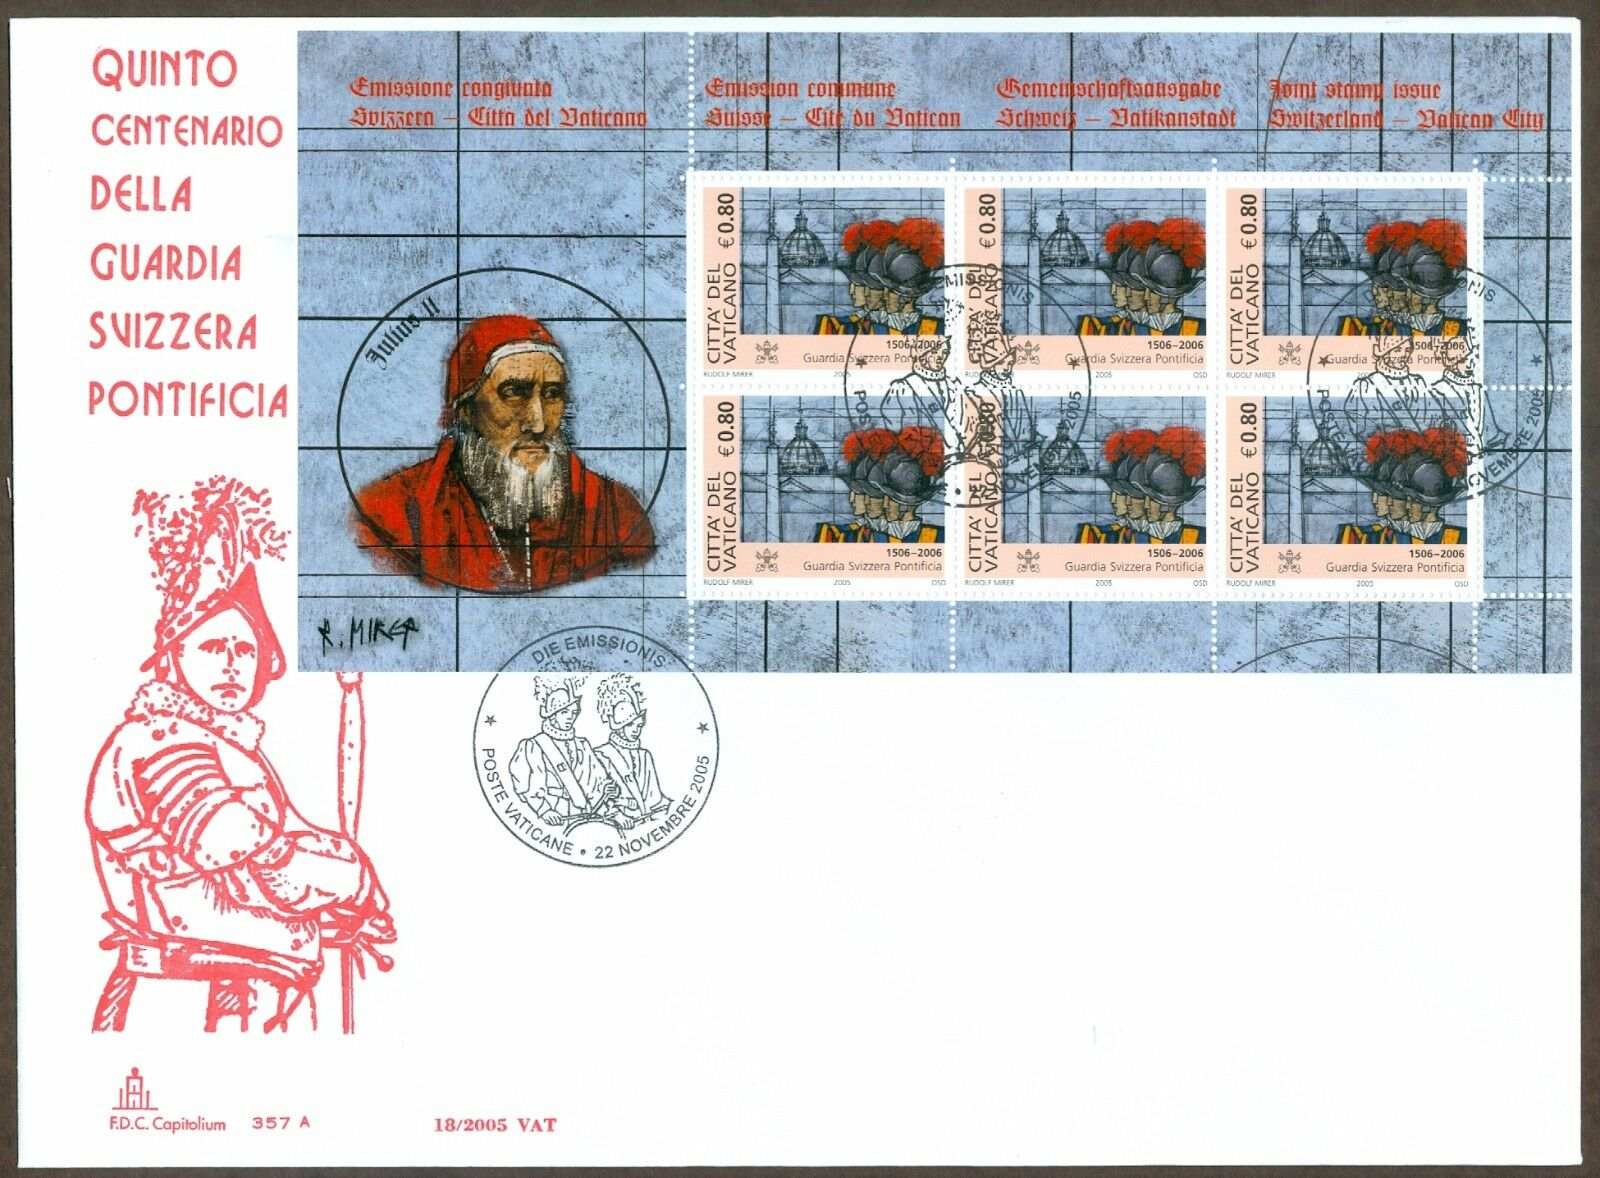 Vatican City - Scott #1316 (2005) first day cover with miniature sheet of six